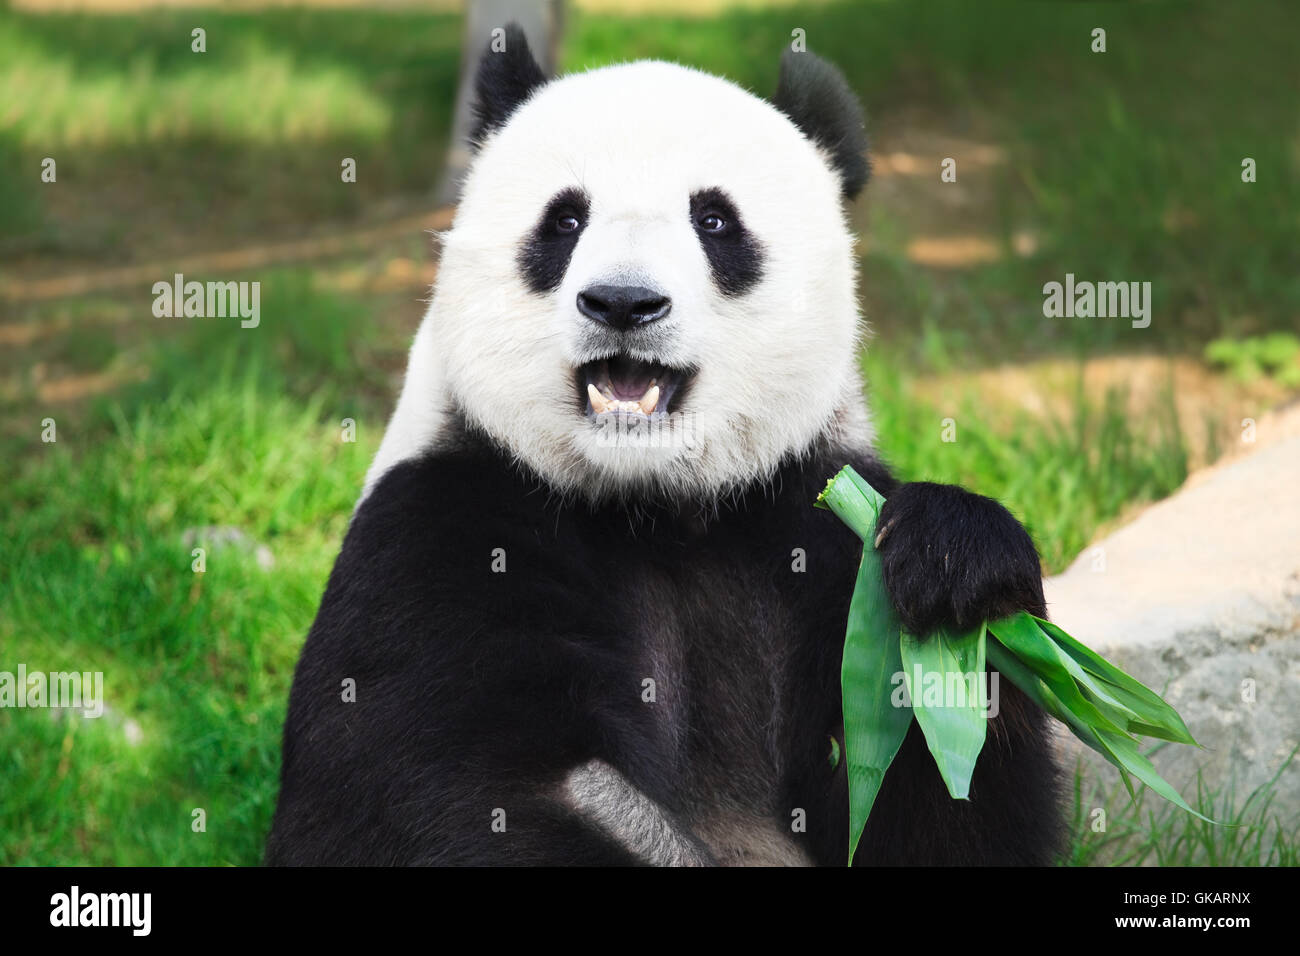 animal bear black Stock Photo